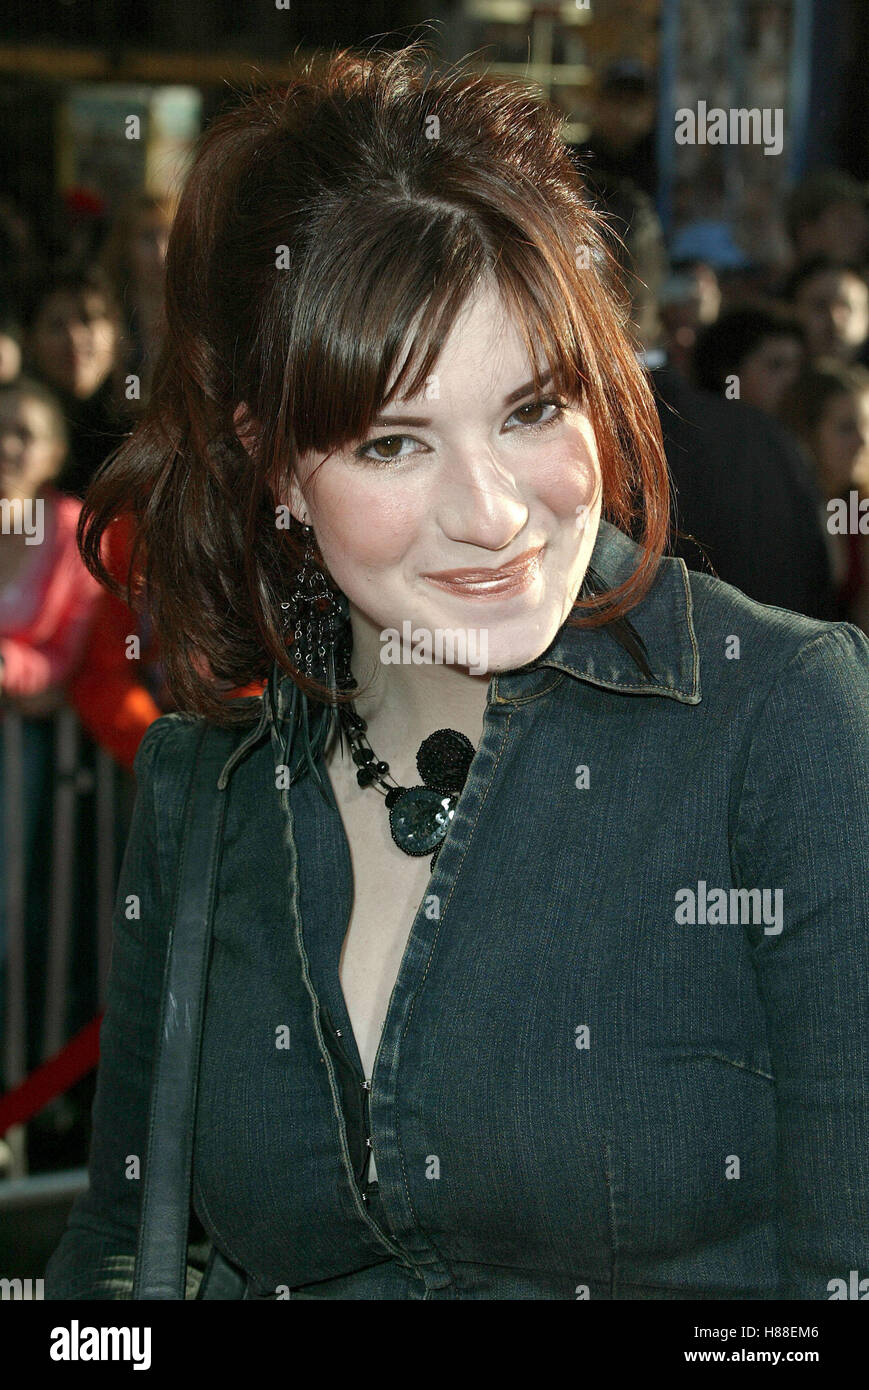 ANNELIESE VAN DER POL THE LIZZIE MCGUIRE MOVIE FILM EL CAPITAIN THEATRE HOLLYWOOD LOS ANGELES USA 26 April 2003 - Stock Image